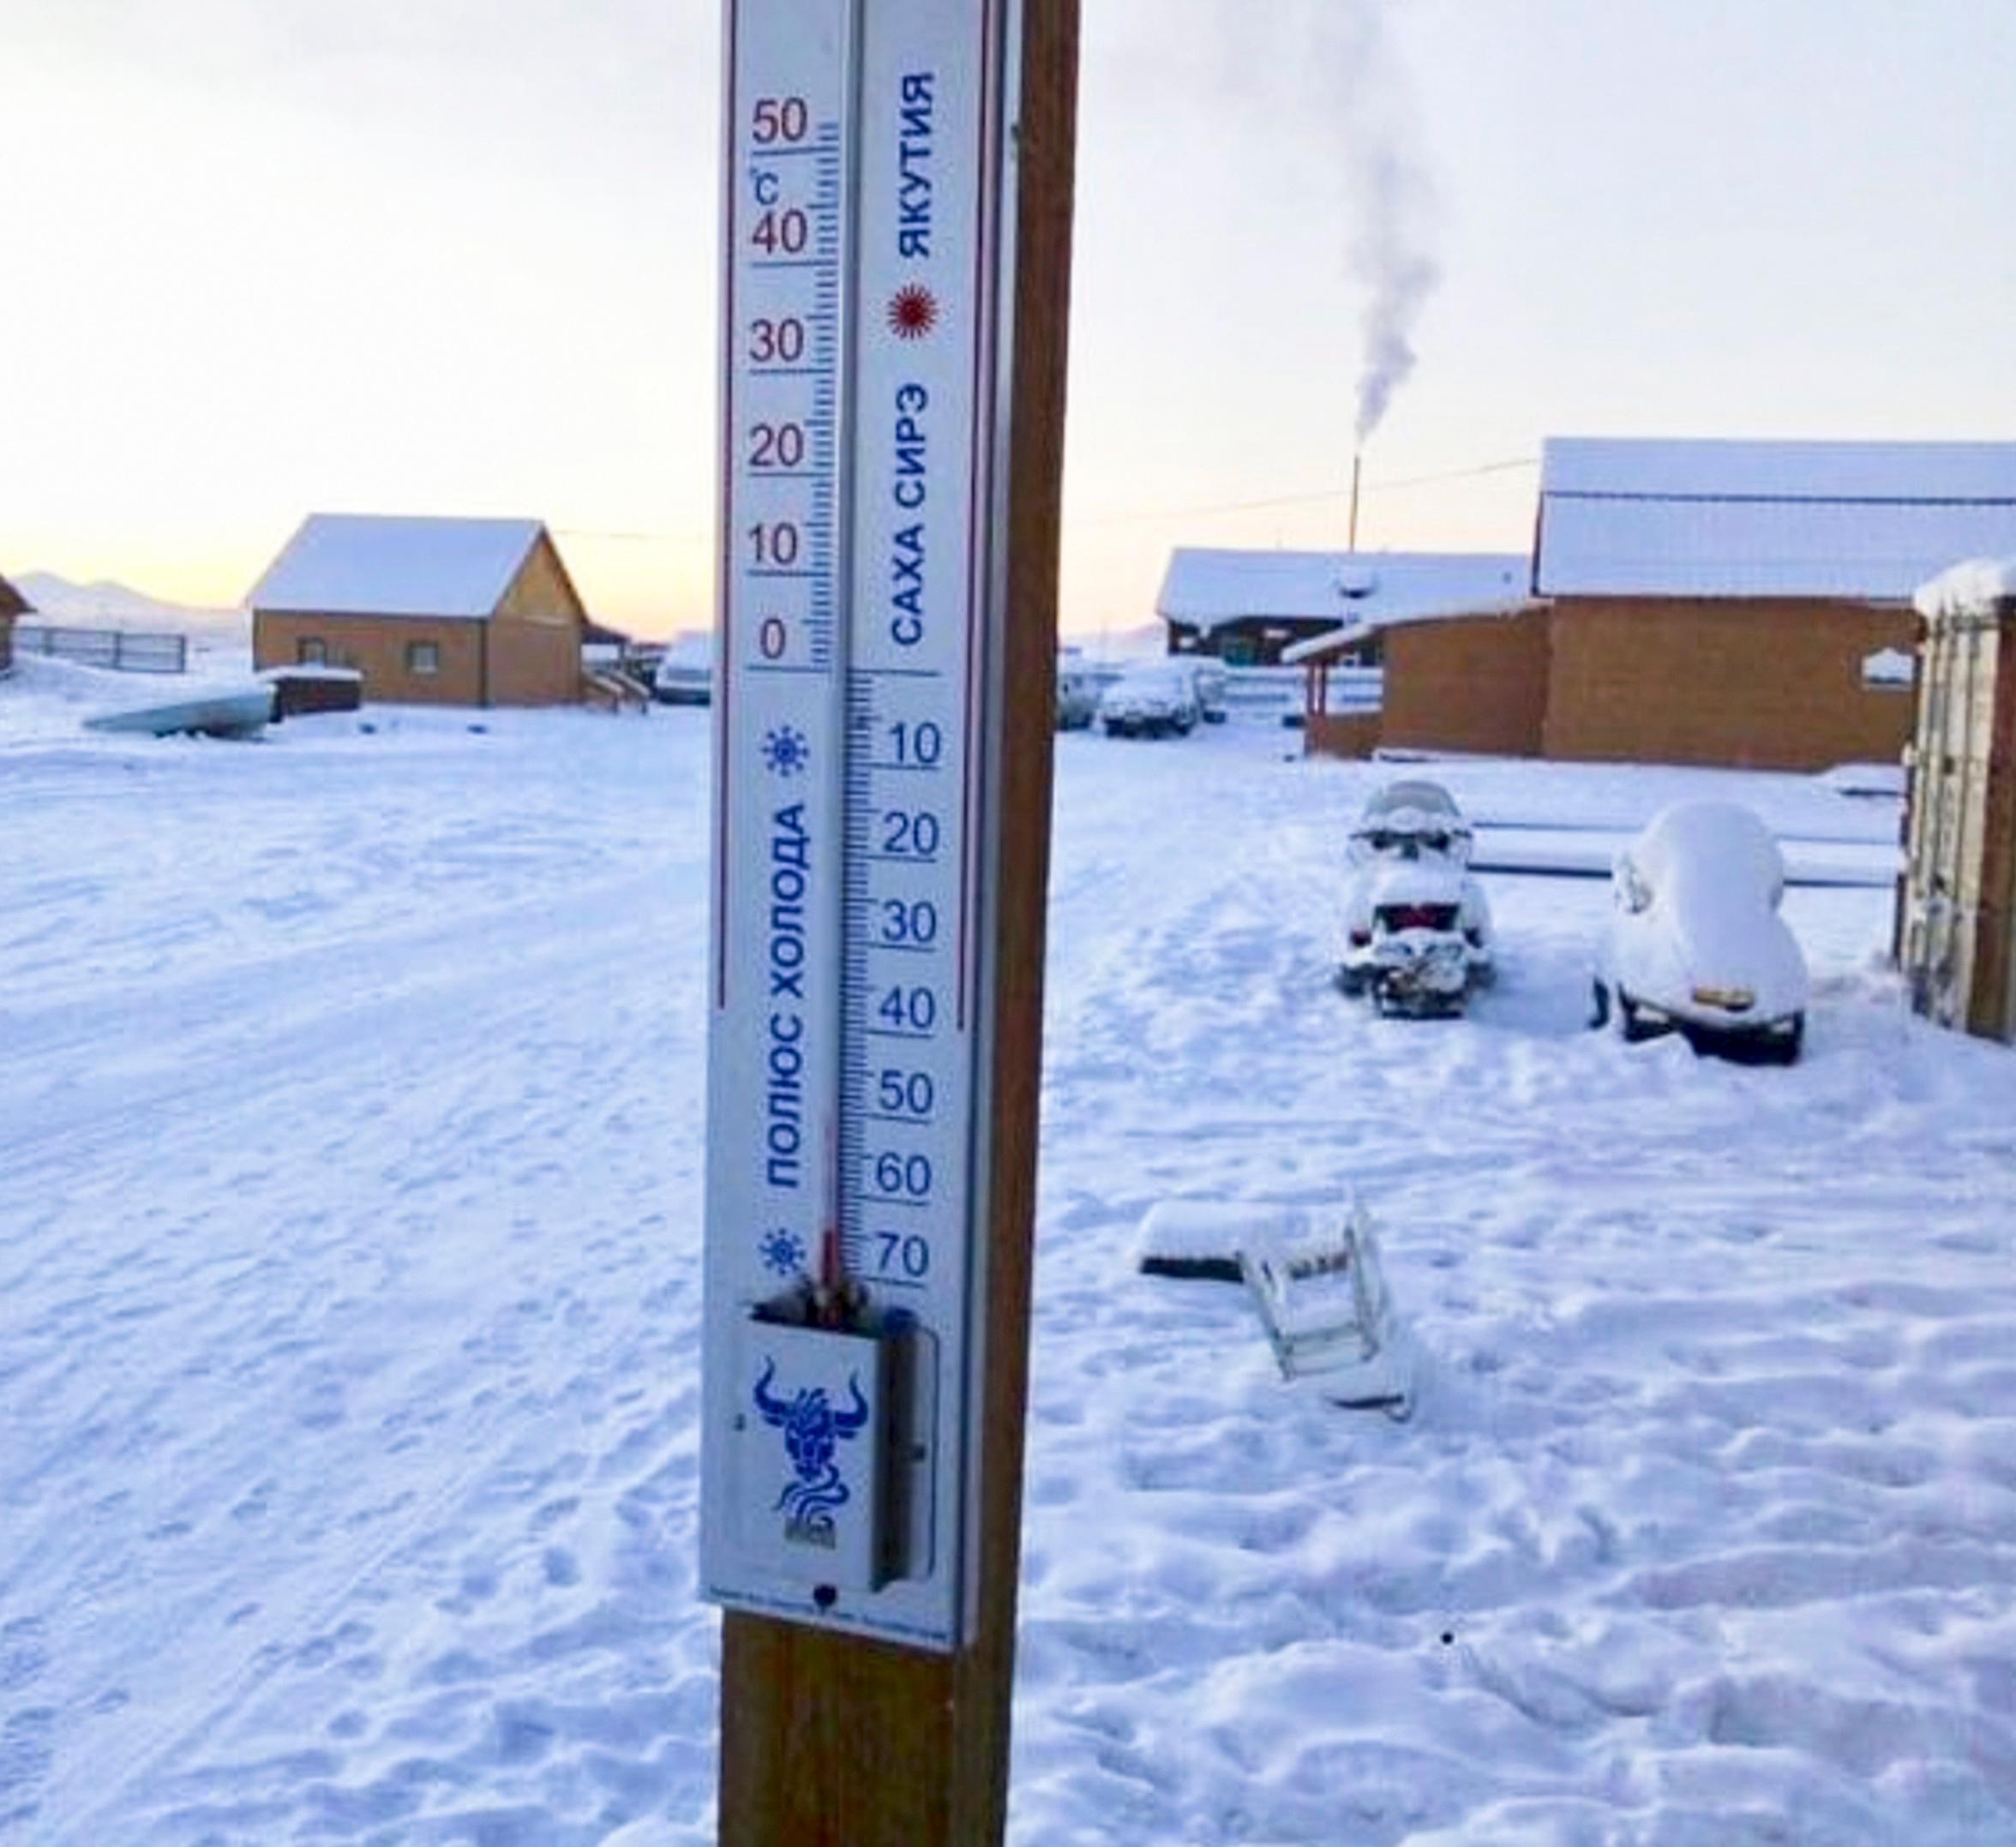 "In this photo taken on Sunday, Jan. 14, 2018, thermometer shows as the temperature dropped to -65 degrees Centigrade (-85 degrees Fahrenheit) in Tomtor village in the east of Yakutia, the center of the 2nd Borogonsky heritage of the Oymyakonsky ulus. Tomtor is known as the ""Pole of Cold"", although this title is disputed by two more settlements Oimyakon and Verkhoyansk. Temperatures in the remote, diamond-rich Russian region of Yakutia have dropped to near-record lows, plunging to -67 degrees Centigrade (-88.6 degrees Fahrenheit) in some areas. (sakhalife.ru photo via AP)"